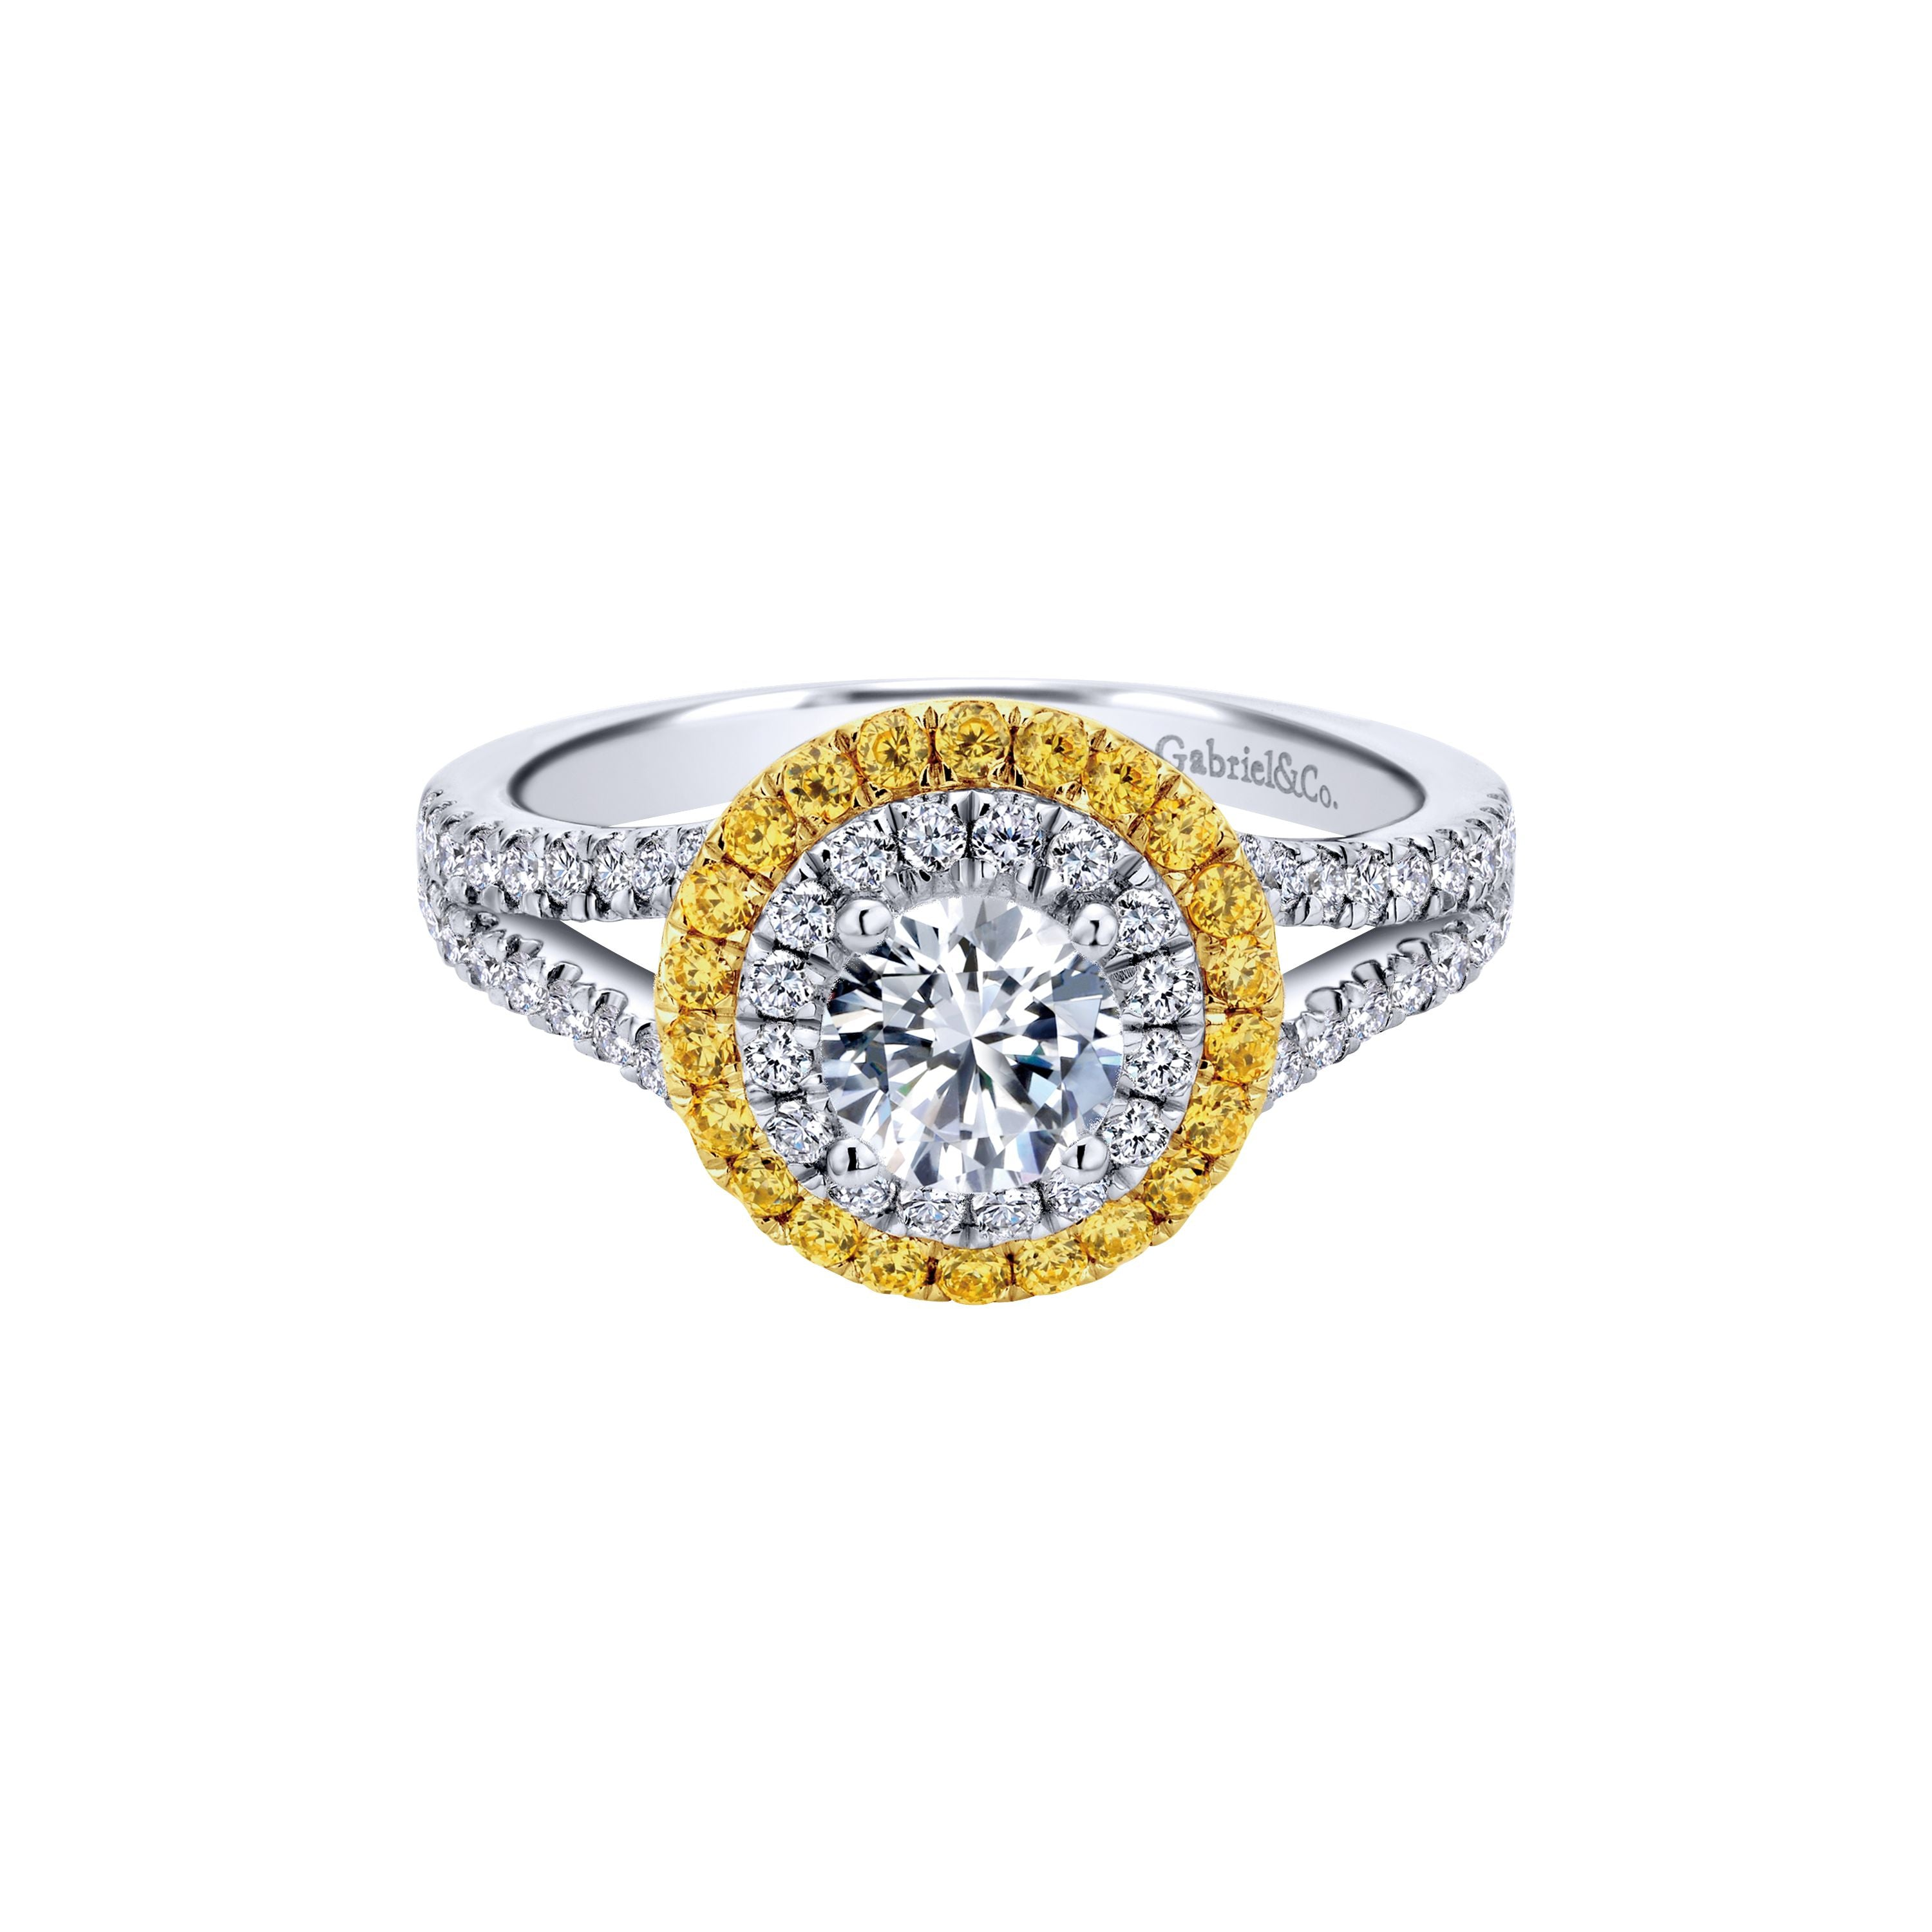 Gabriel & Co. 14k White Gold Round Double Halo with Diamonds & Yellow Sapphires Engagement Ring